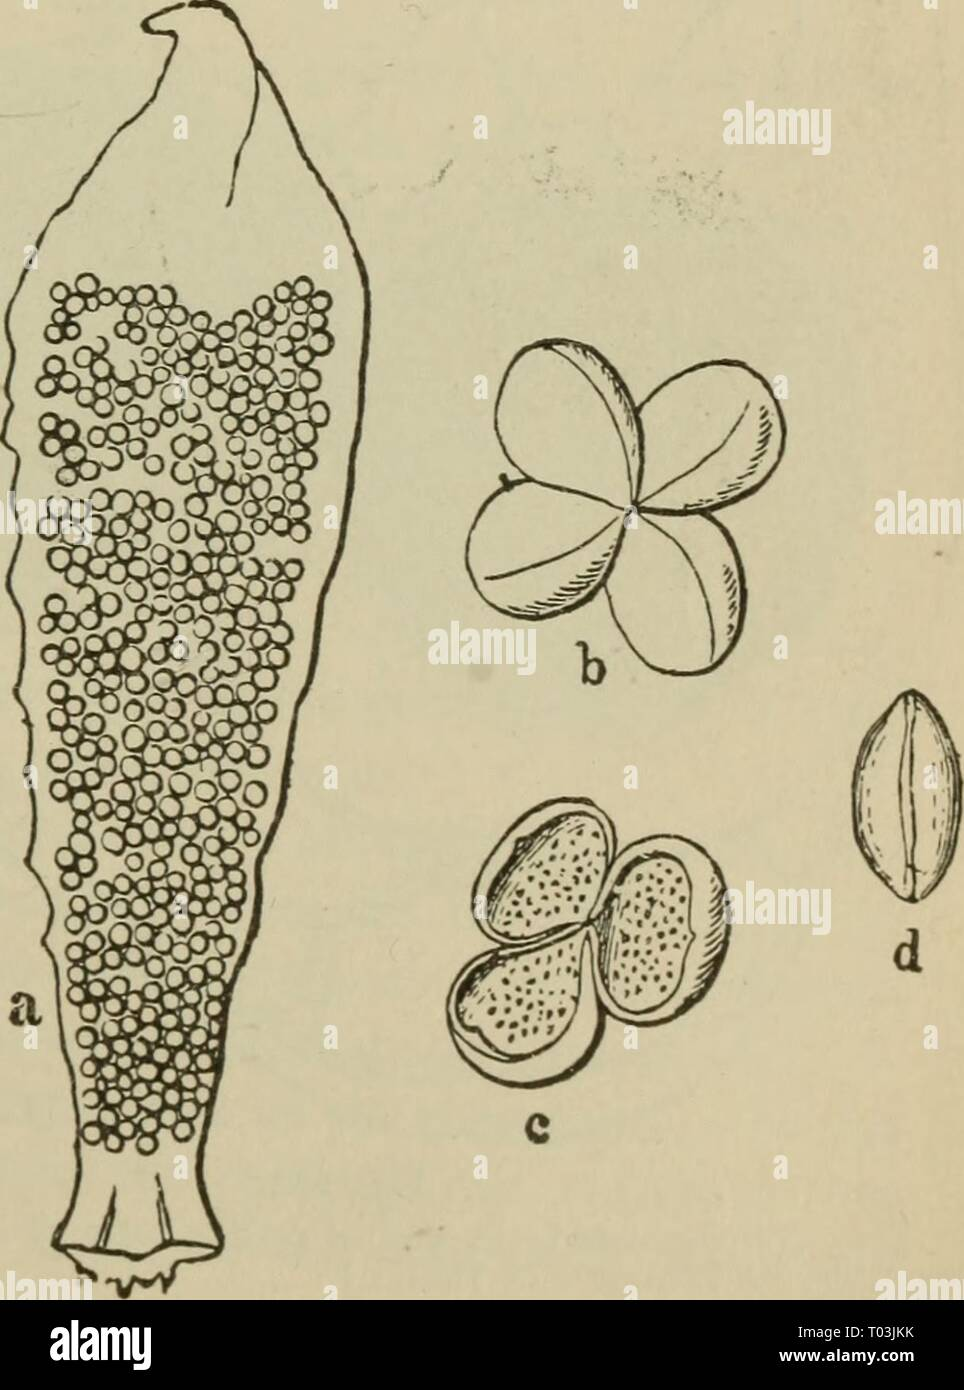 Elementary botany . elementarybotany00atki Year: 1898  Fig. 279. Macrosporangium ot Cycas revoluta Fig. 280. Roentgen photograph of same, show- ing female prothallium. sporophyte. Archegonia are developed in this internal mass of cells. This aids us in deter- mining that it is the prothal- lium. In cycas it is also called endosperm, just as in the pines. 430. If we cut open one of the mature ovules, we can see the en- dosperm (prothallium) as a whitish mass of tissue. Immediately sur- rounding it at maturity is a thin, papery tissue, the remains of the nucellus (macrosporangium), and outside o Stock Photo